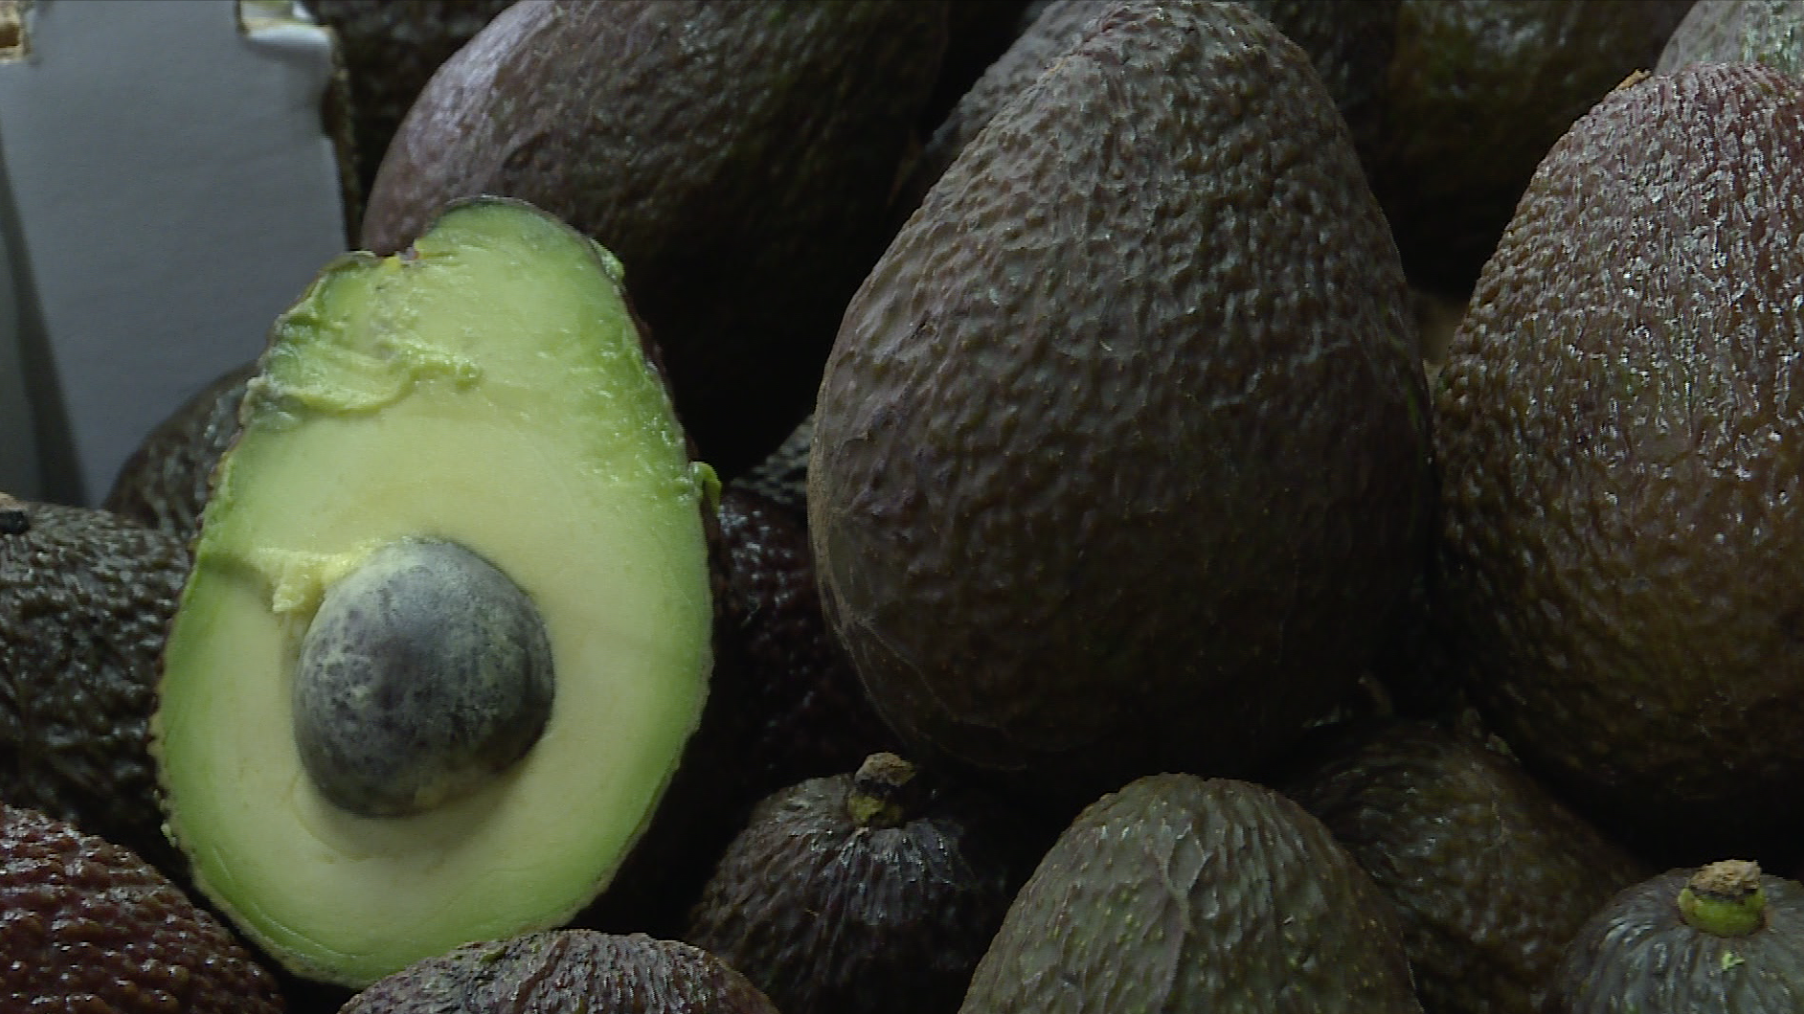 L'avocat, nouveau fruit-star